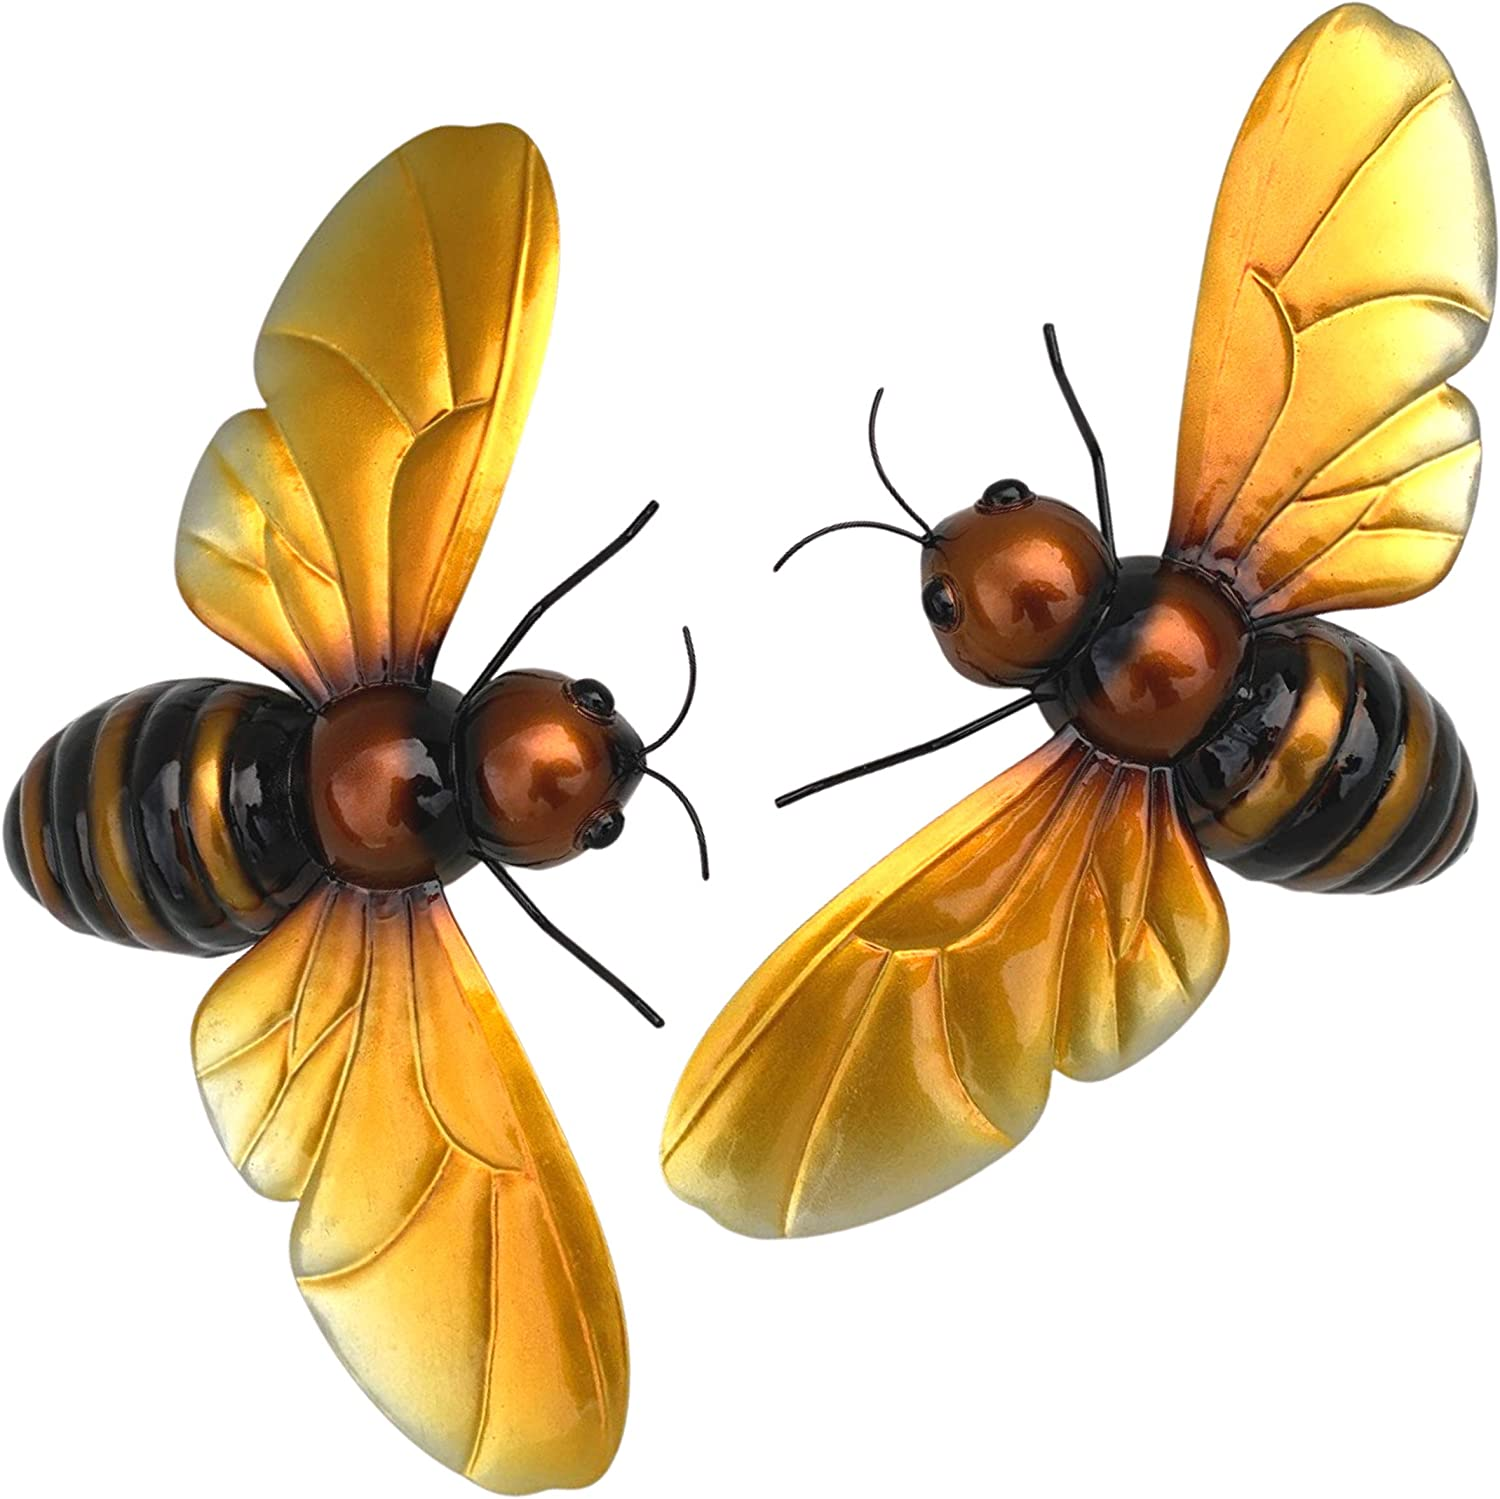 Honey Bee Décor; Indoor Outdoor Metal Wall Art; 2 Beautiful Metal Bee Decorations for Home or Garden Wall Art; Backyard Décor for Fence, Patio, Porch or Inspirational Bee Kitchen Décor; by Ekhaya